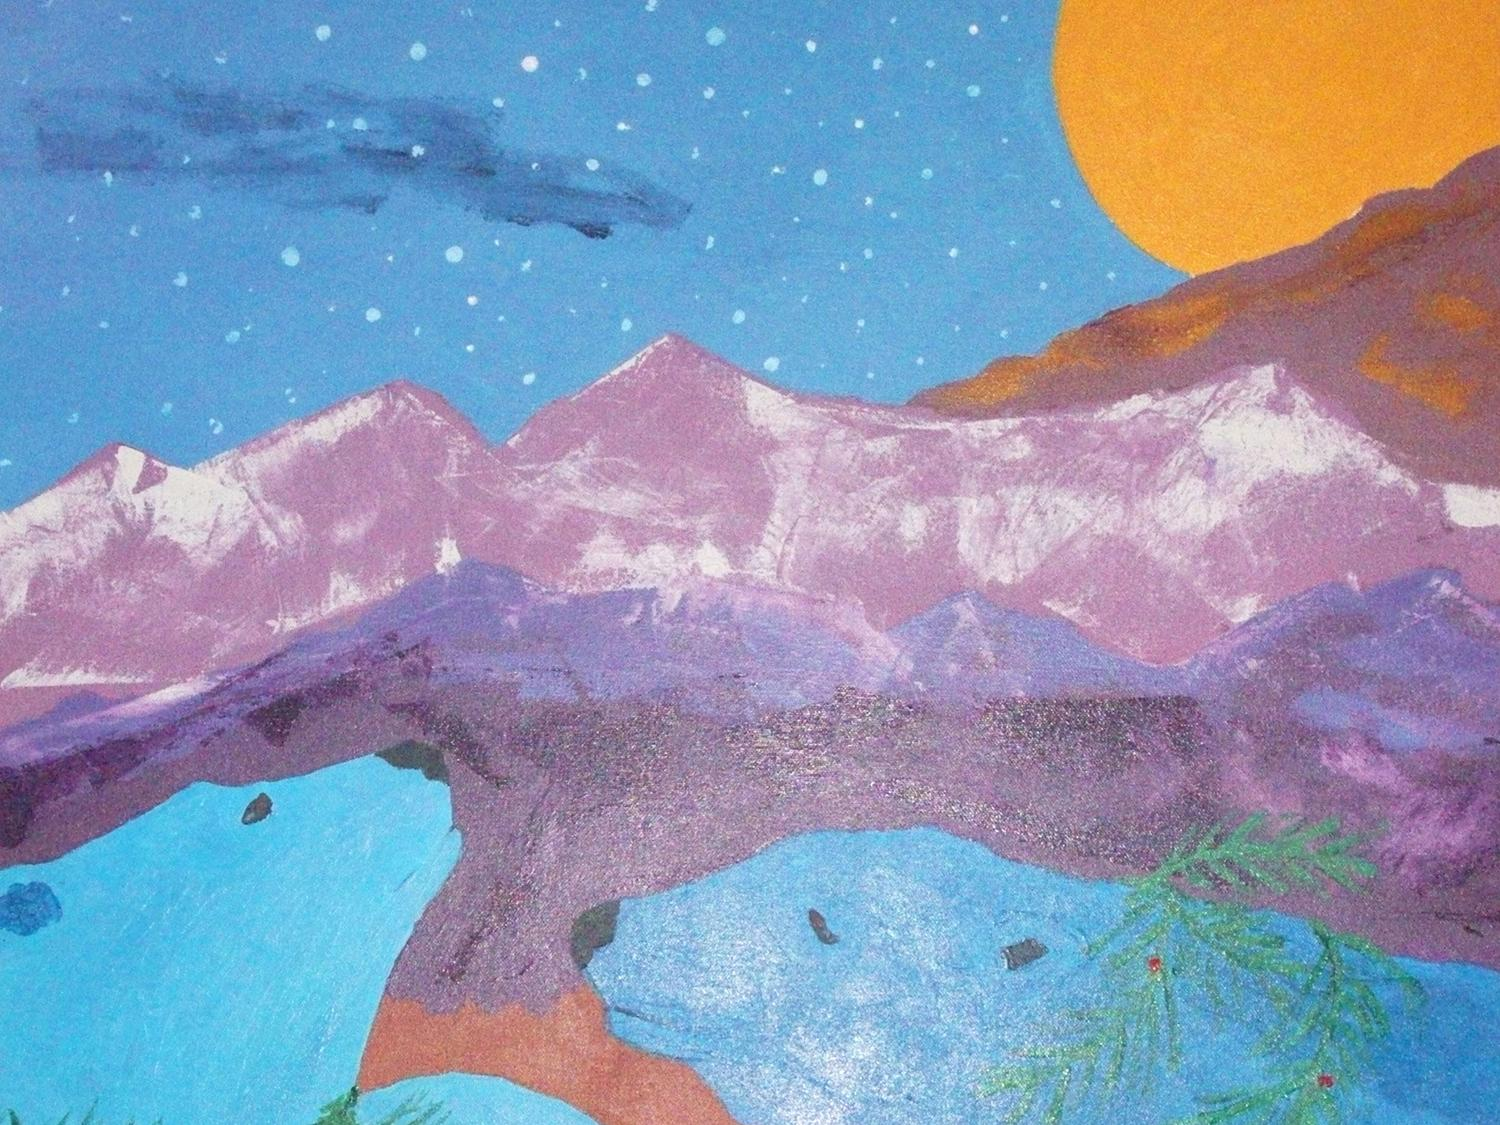 Painting showing a moon peeking over mountains